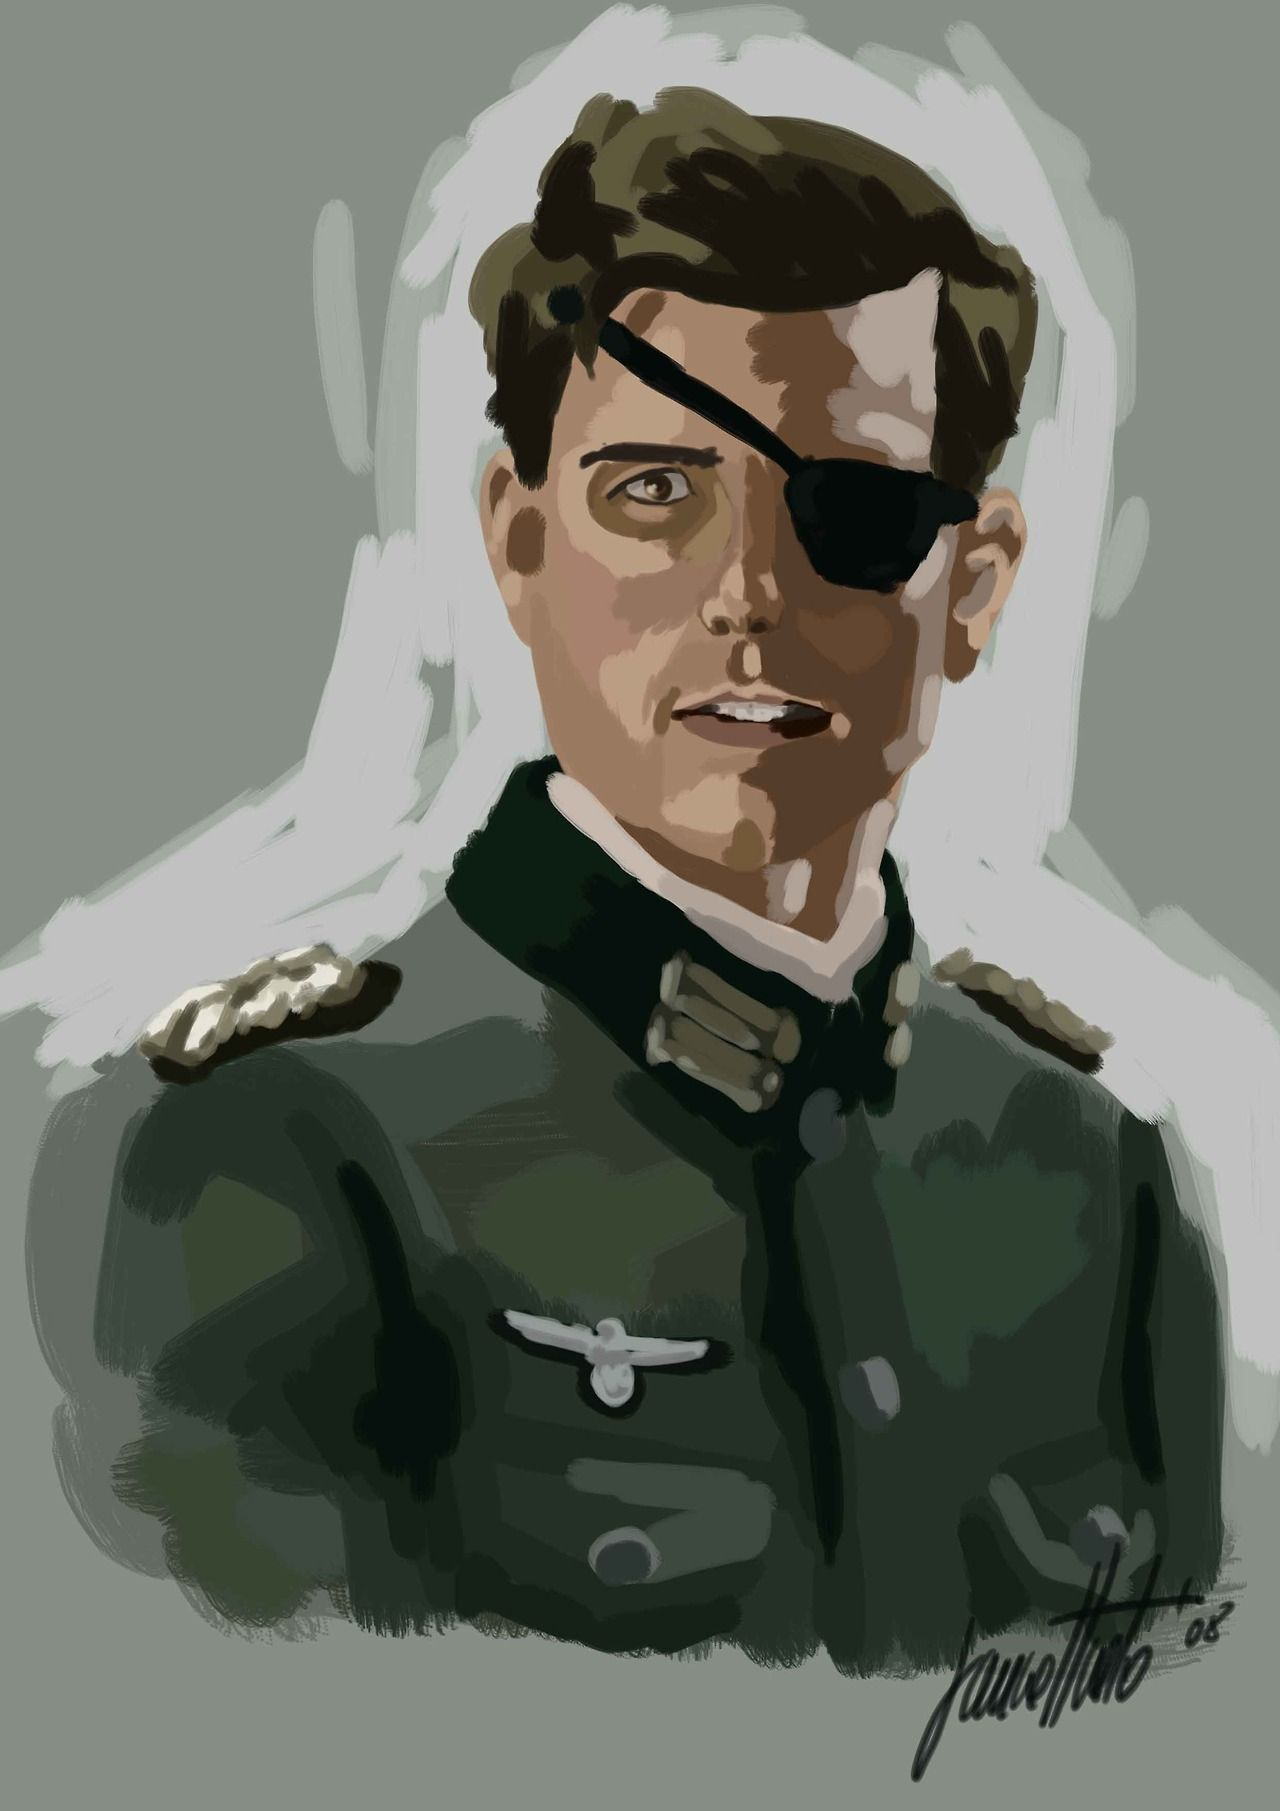 Tom Cruise In Valkyrie 2008 Tom Cruise Movie Artwork Profile Picture